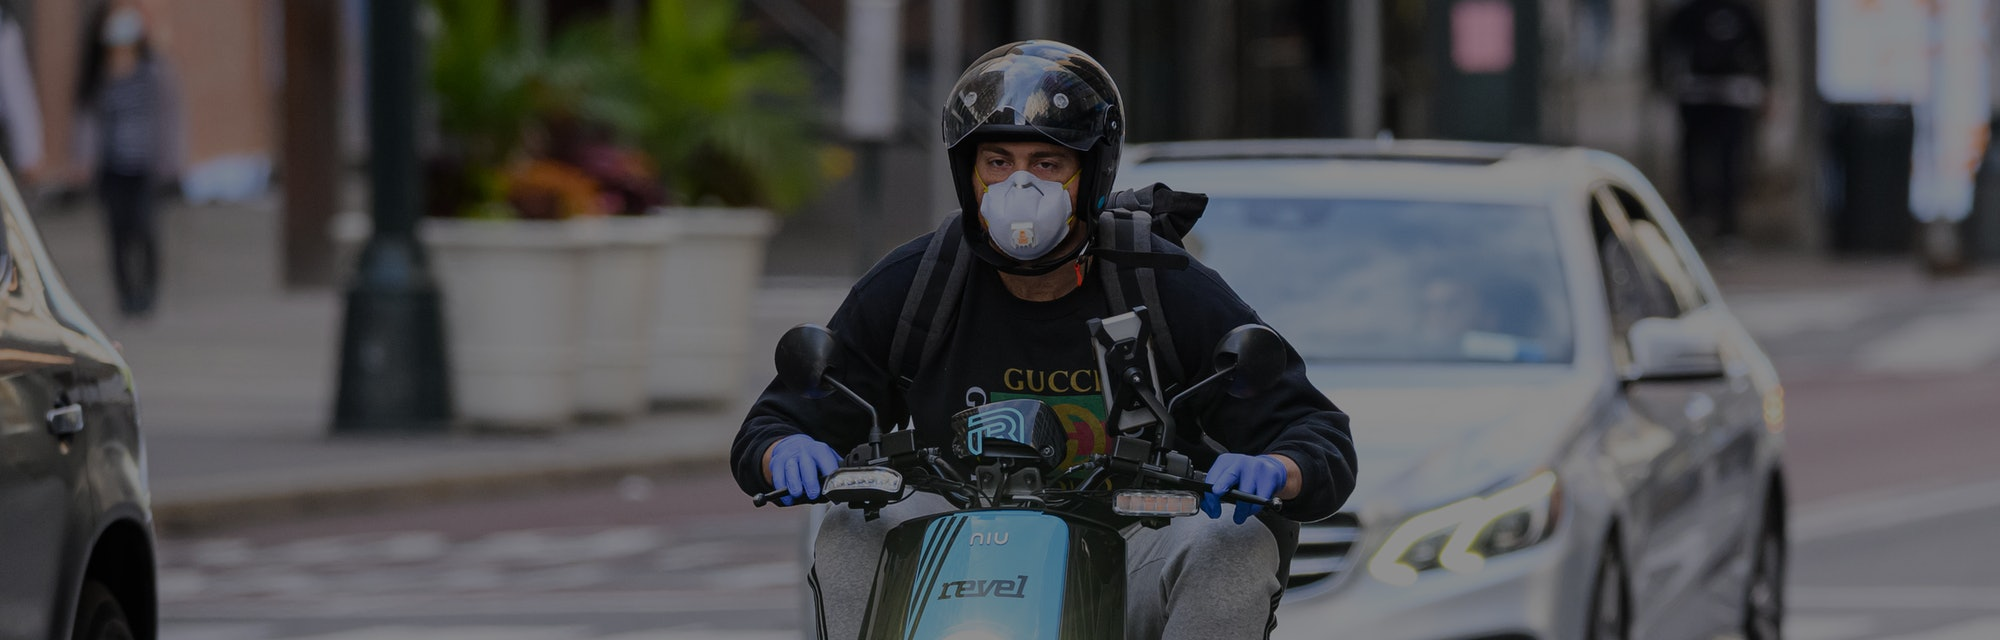 A rider with a helmet and face mask on can be seen riding a Revel scooter. Behind him is a car.